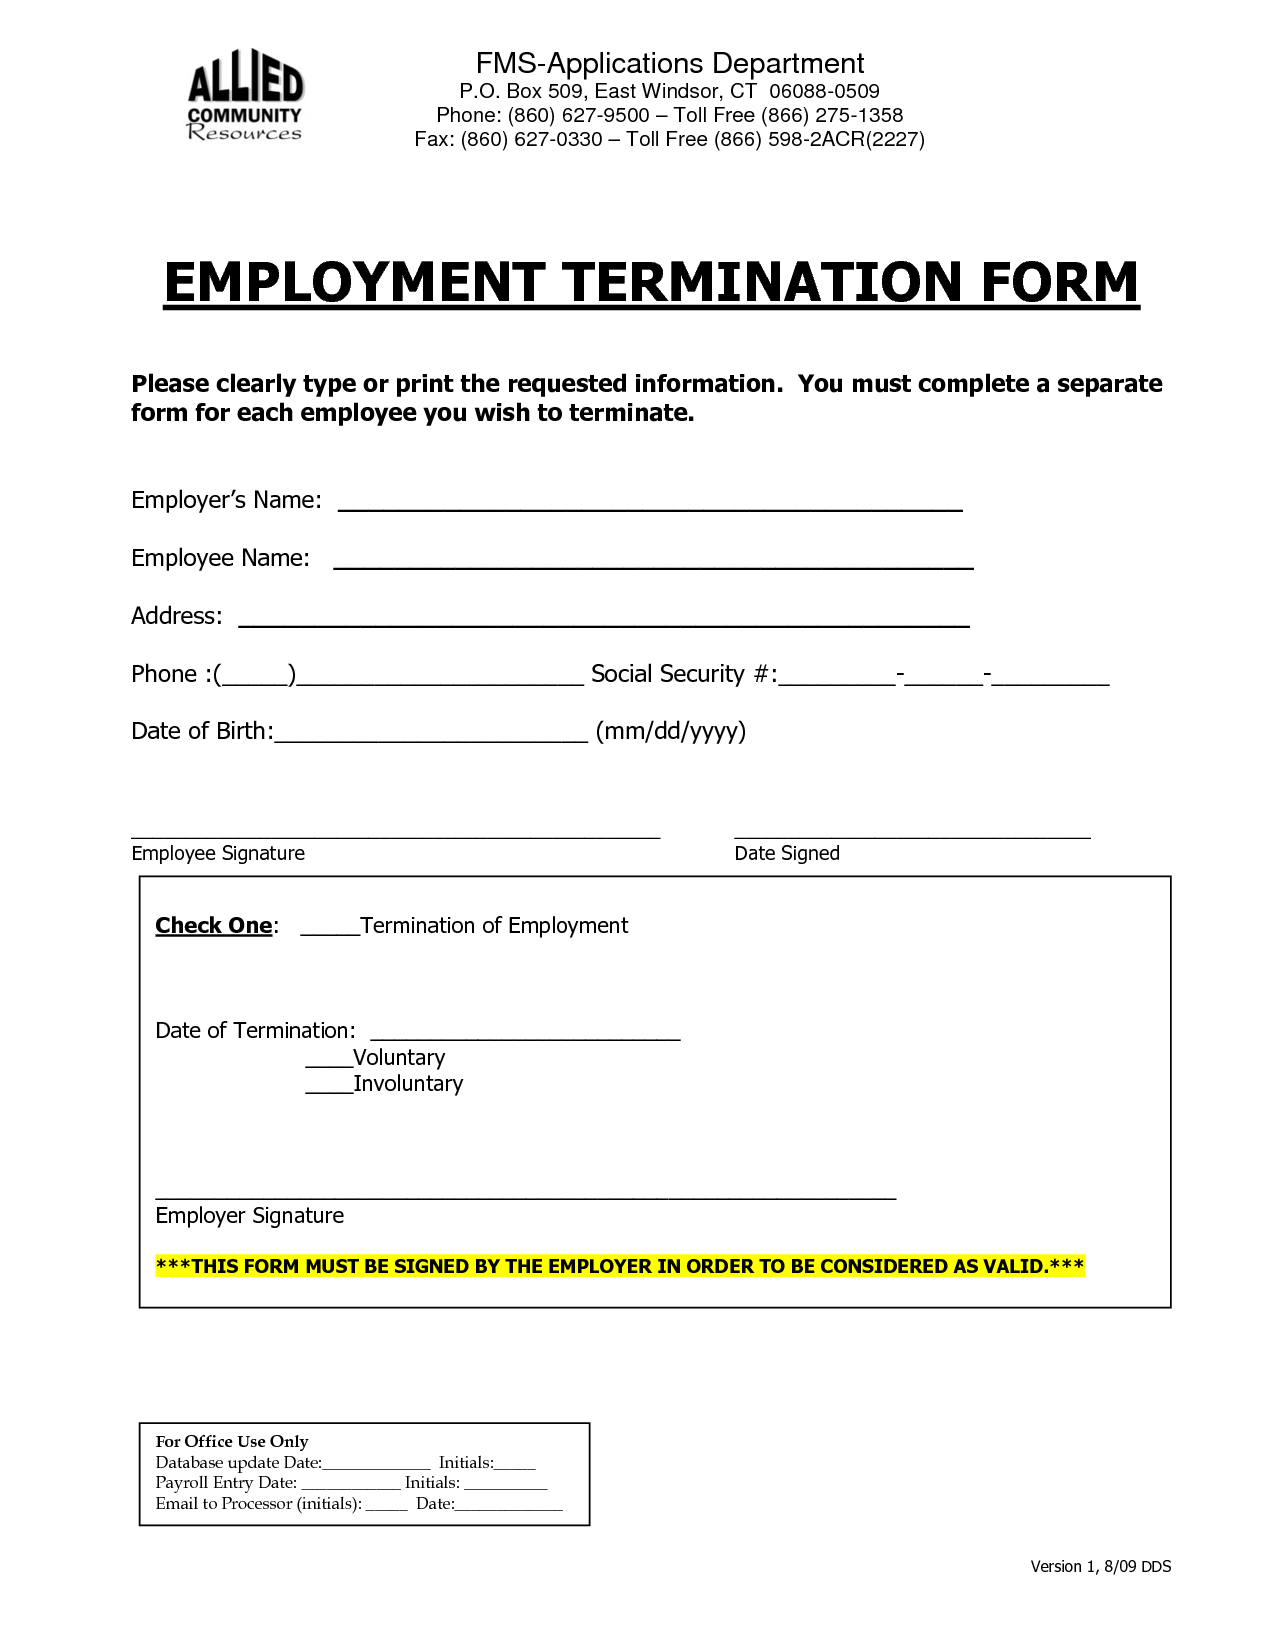 employment termination form template employment termination form template 33